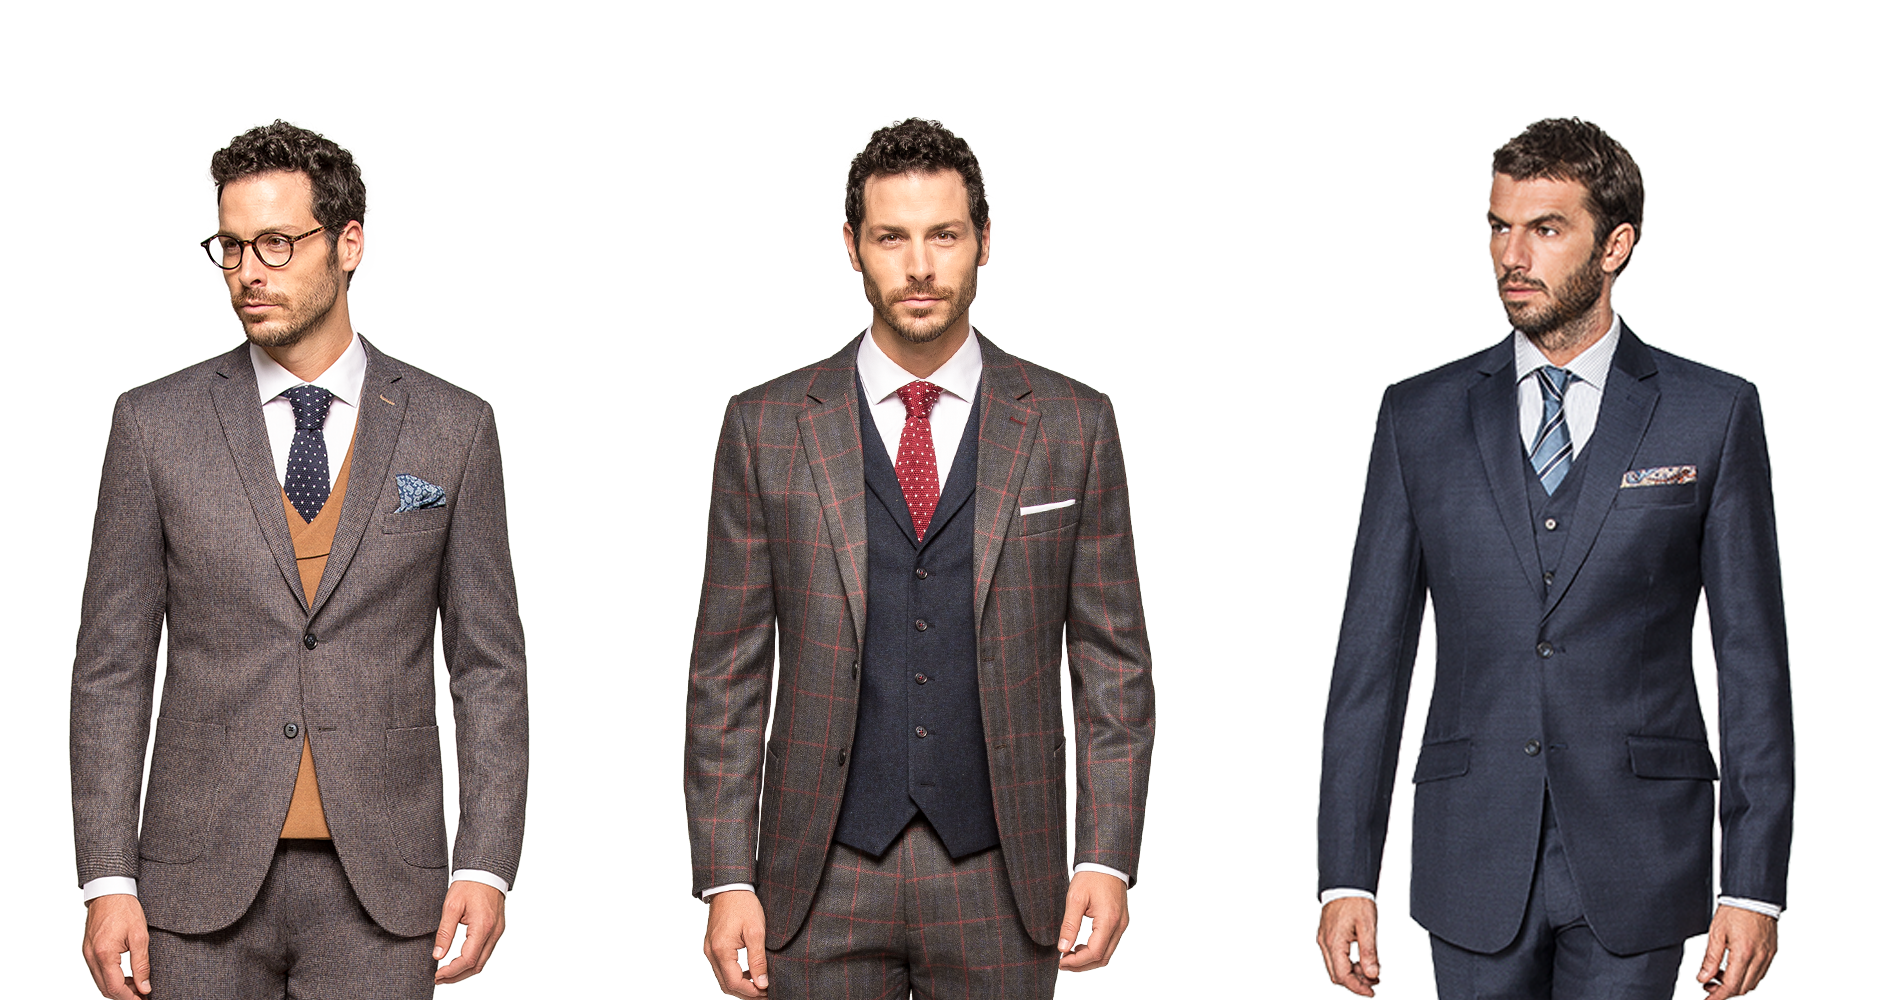 How to Suit Up in a 3 Piece